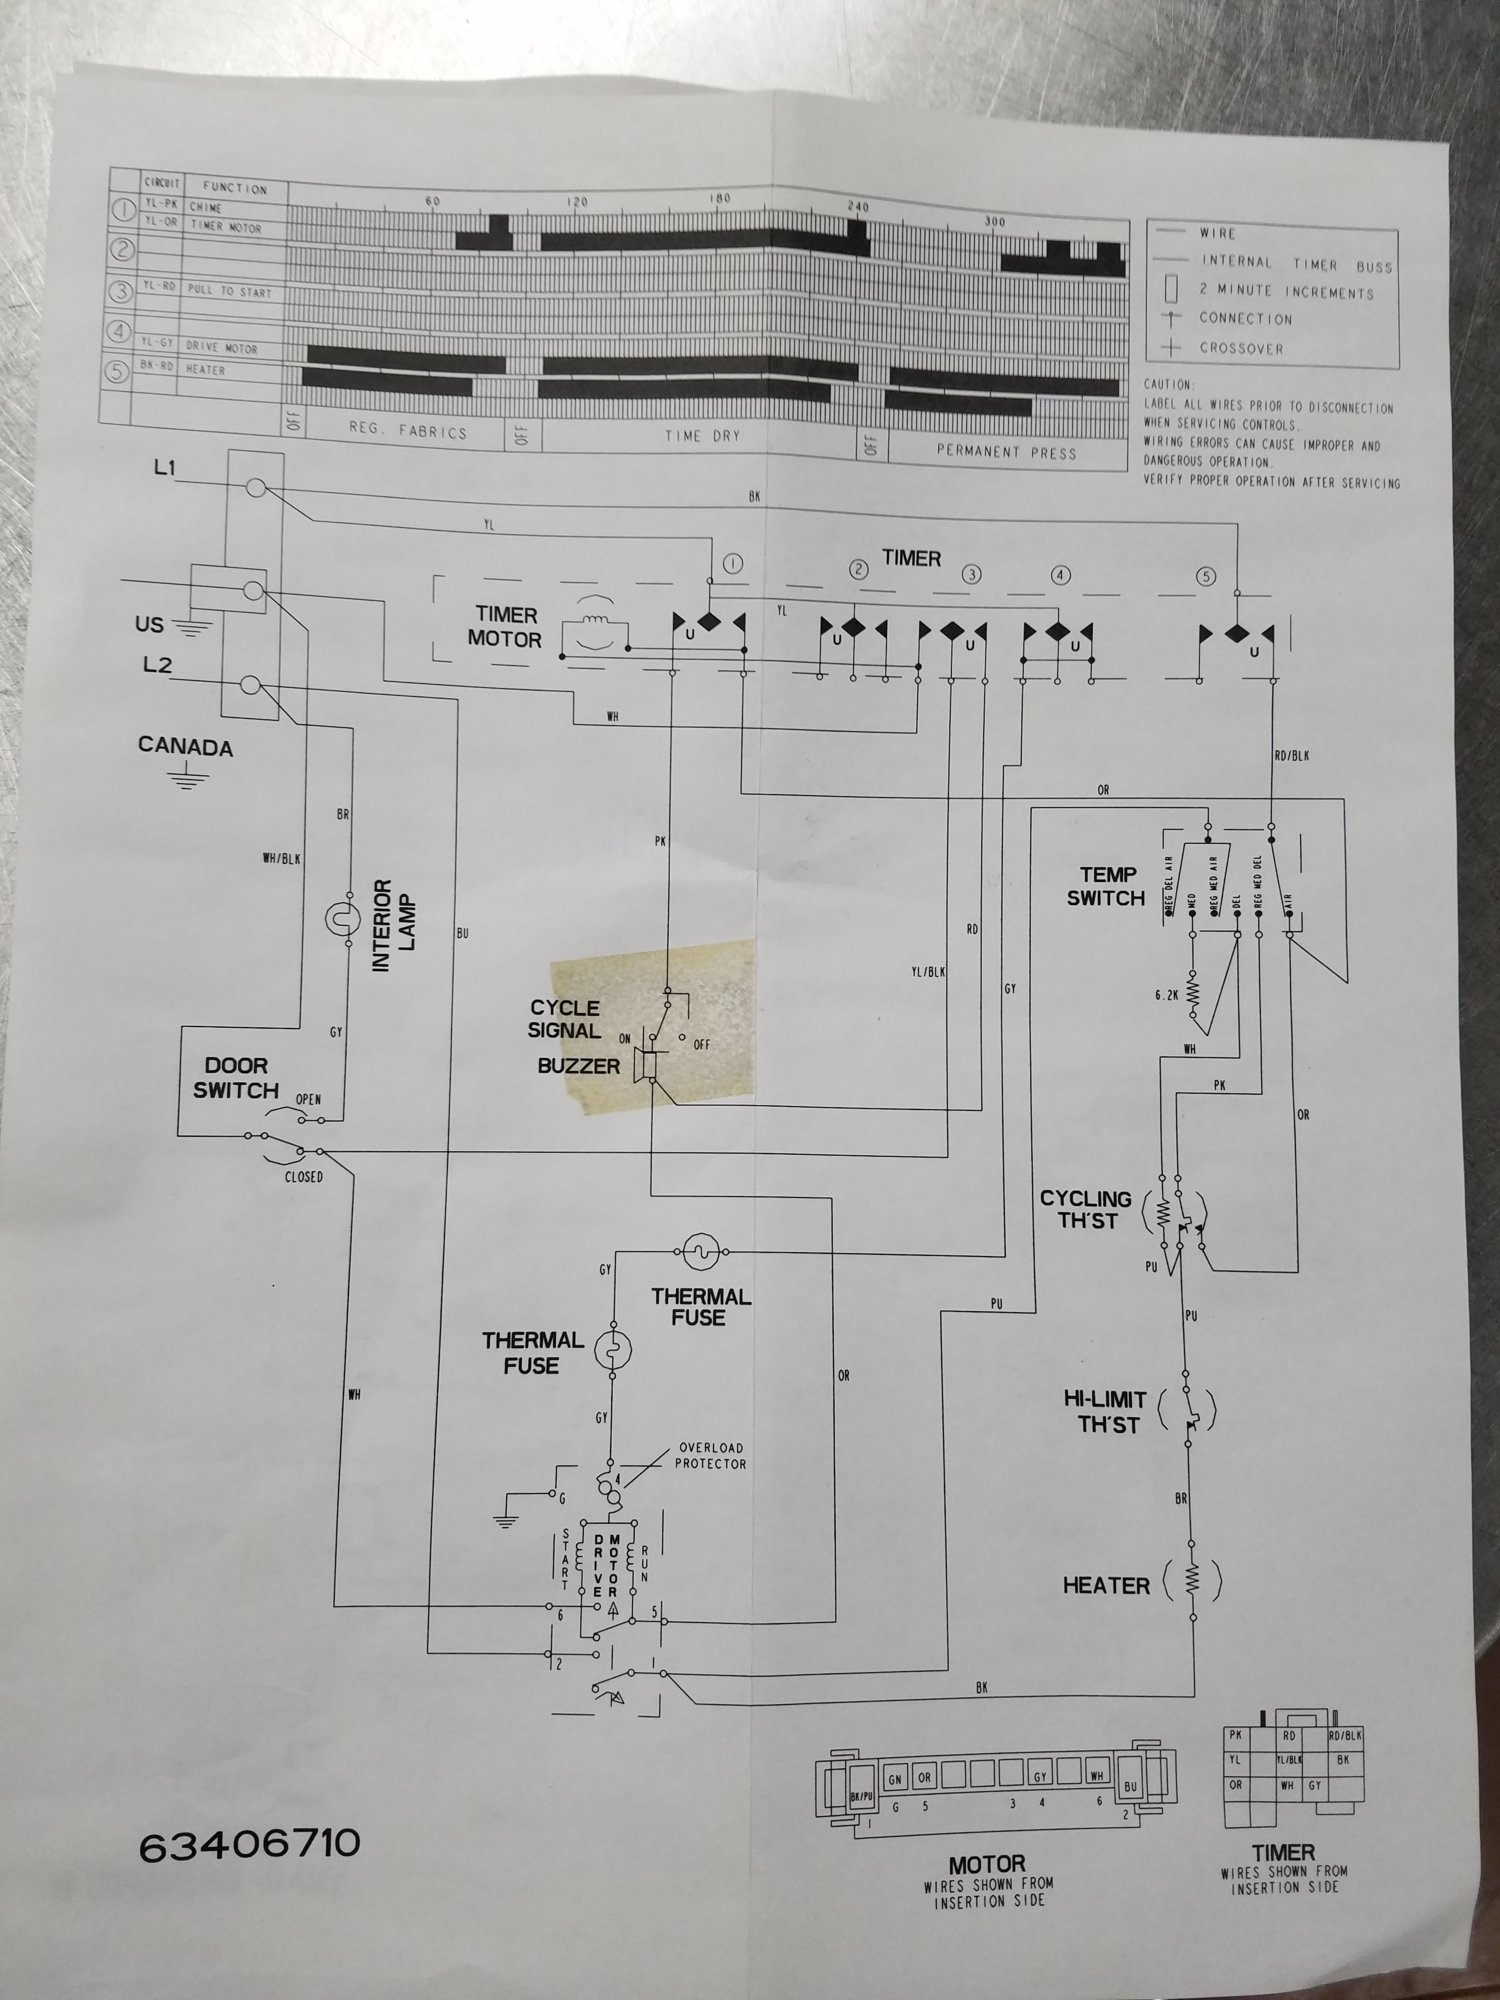 Maytag Atlantis Dryer Wiring Diagram from www.applianceblog.com